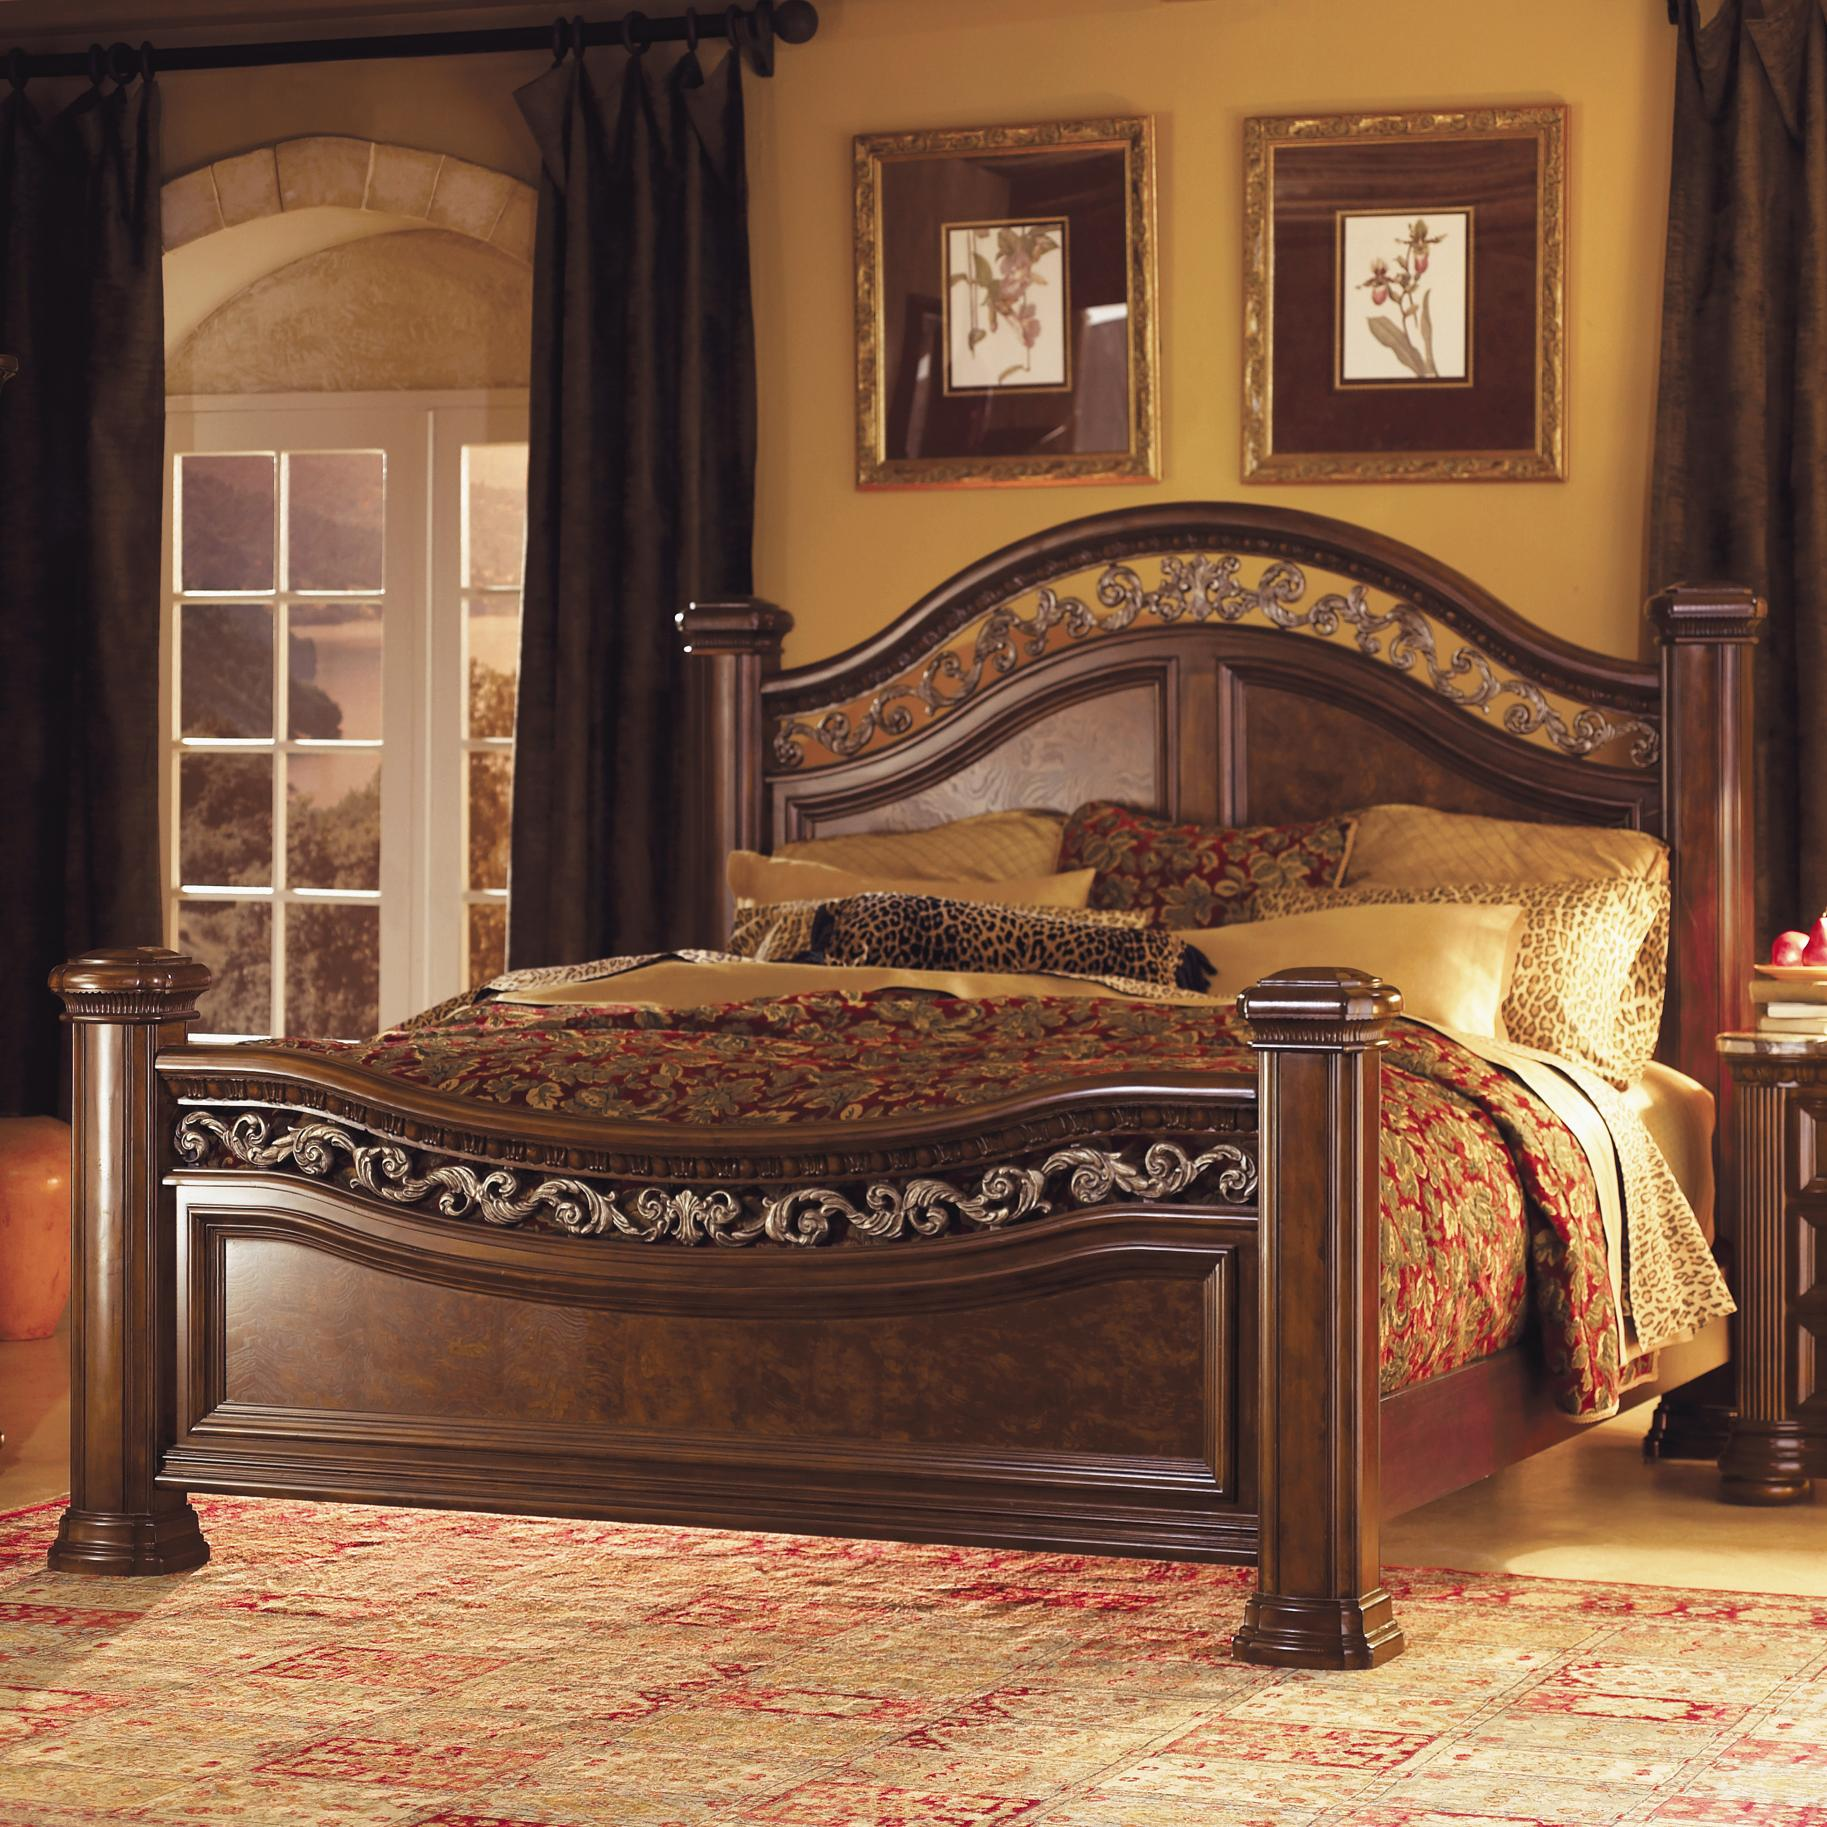 Flexsteel Wynwood Collection Granada King Mansion Bed With Wrought Iron Accents Ahfa Headboard Footboard Dealer Locator